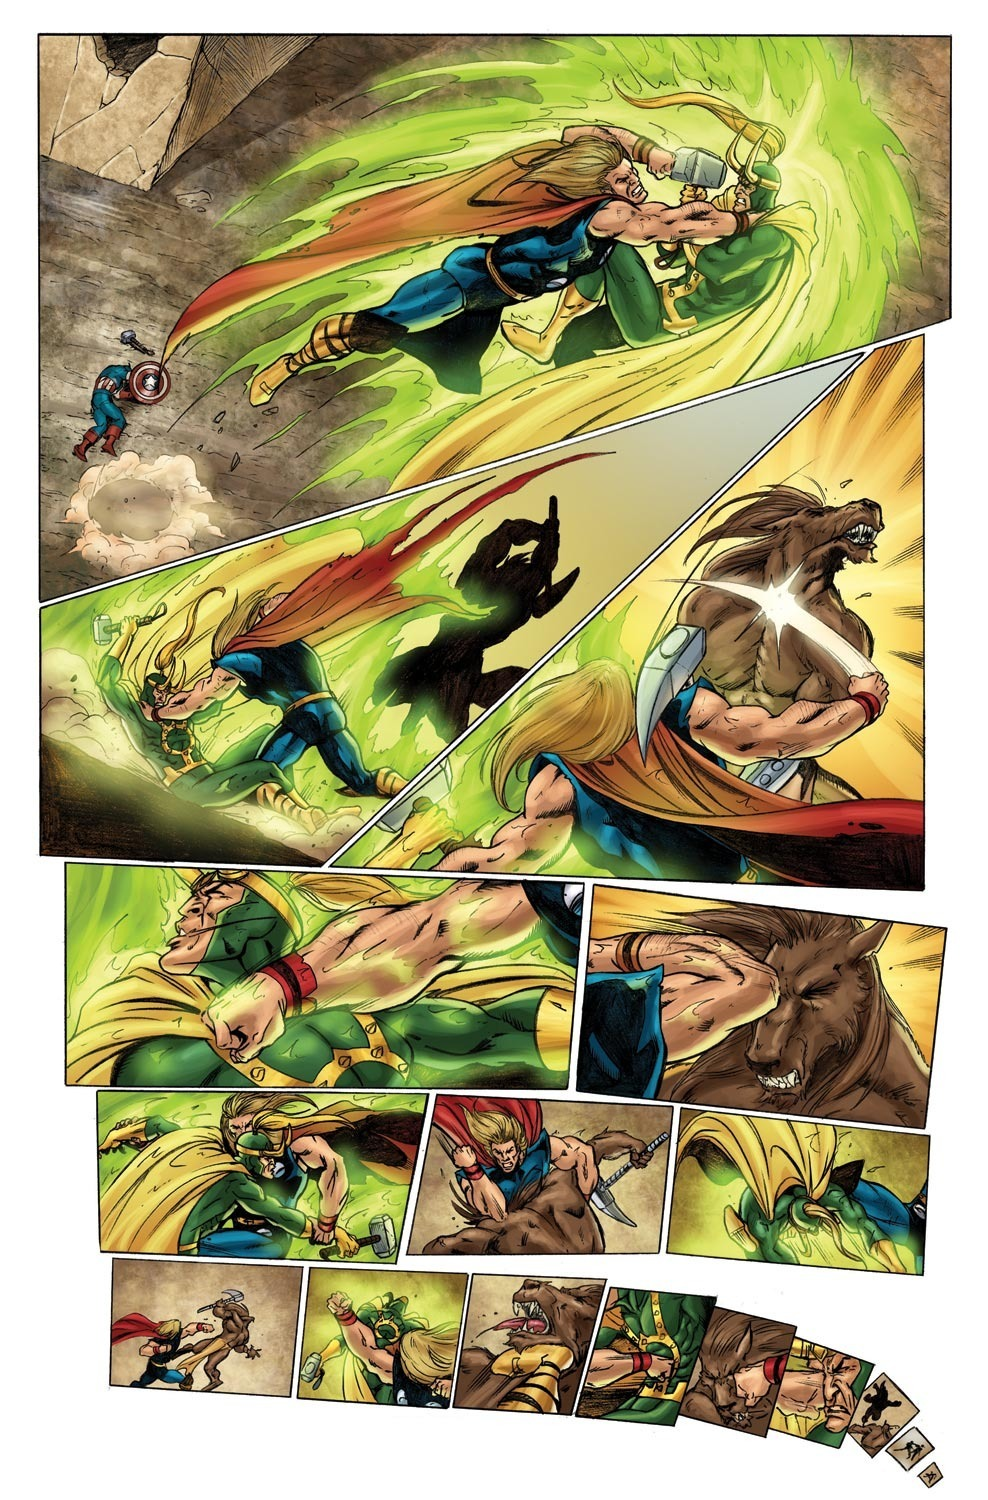 Thor is fast enough to simultaneously beat up Loki and some horse creature who tried to sneak attack him